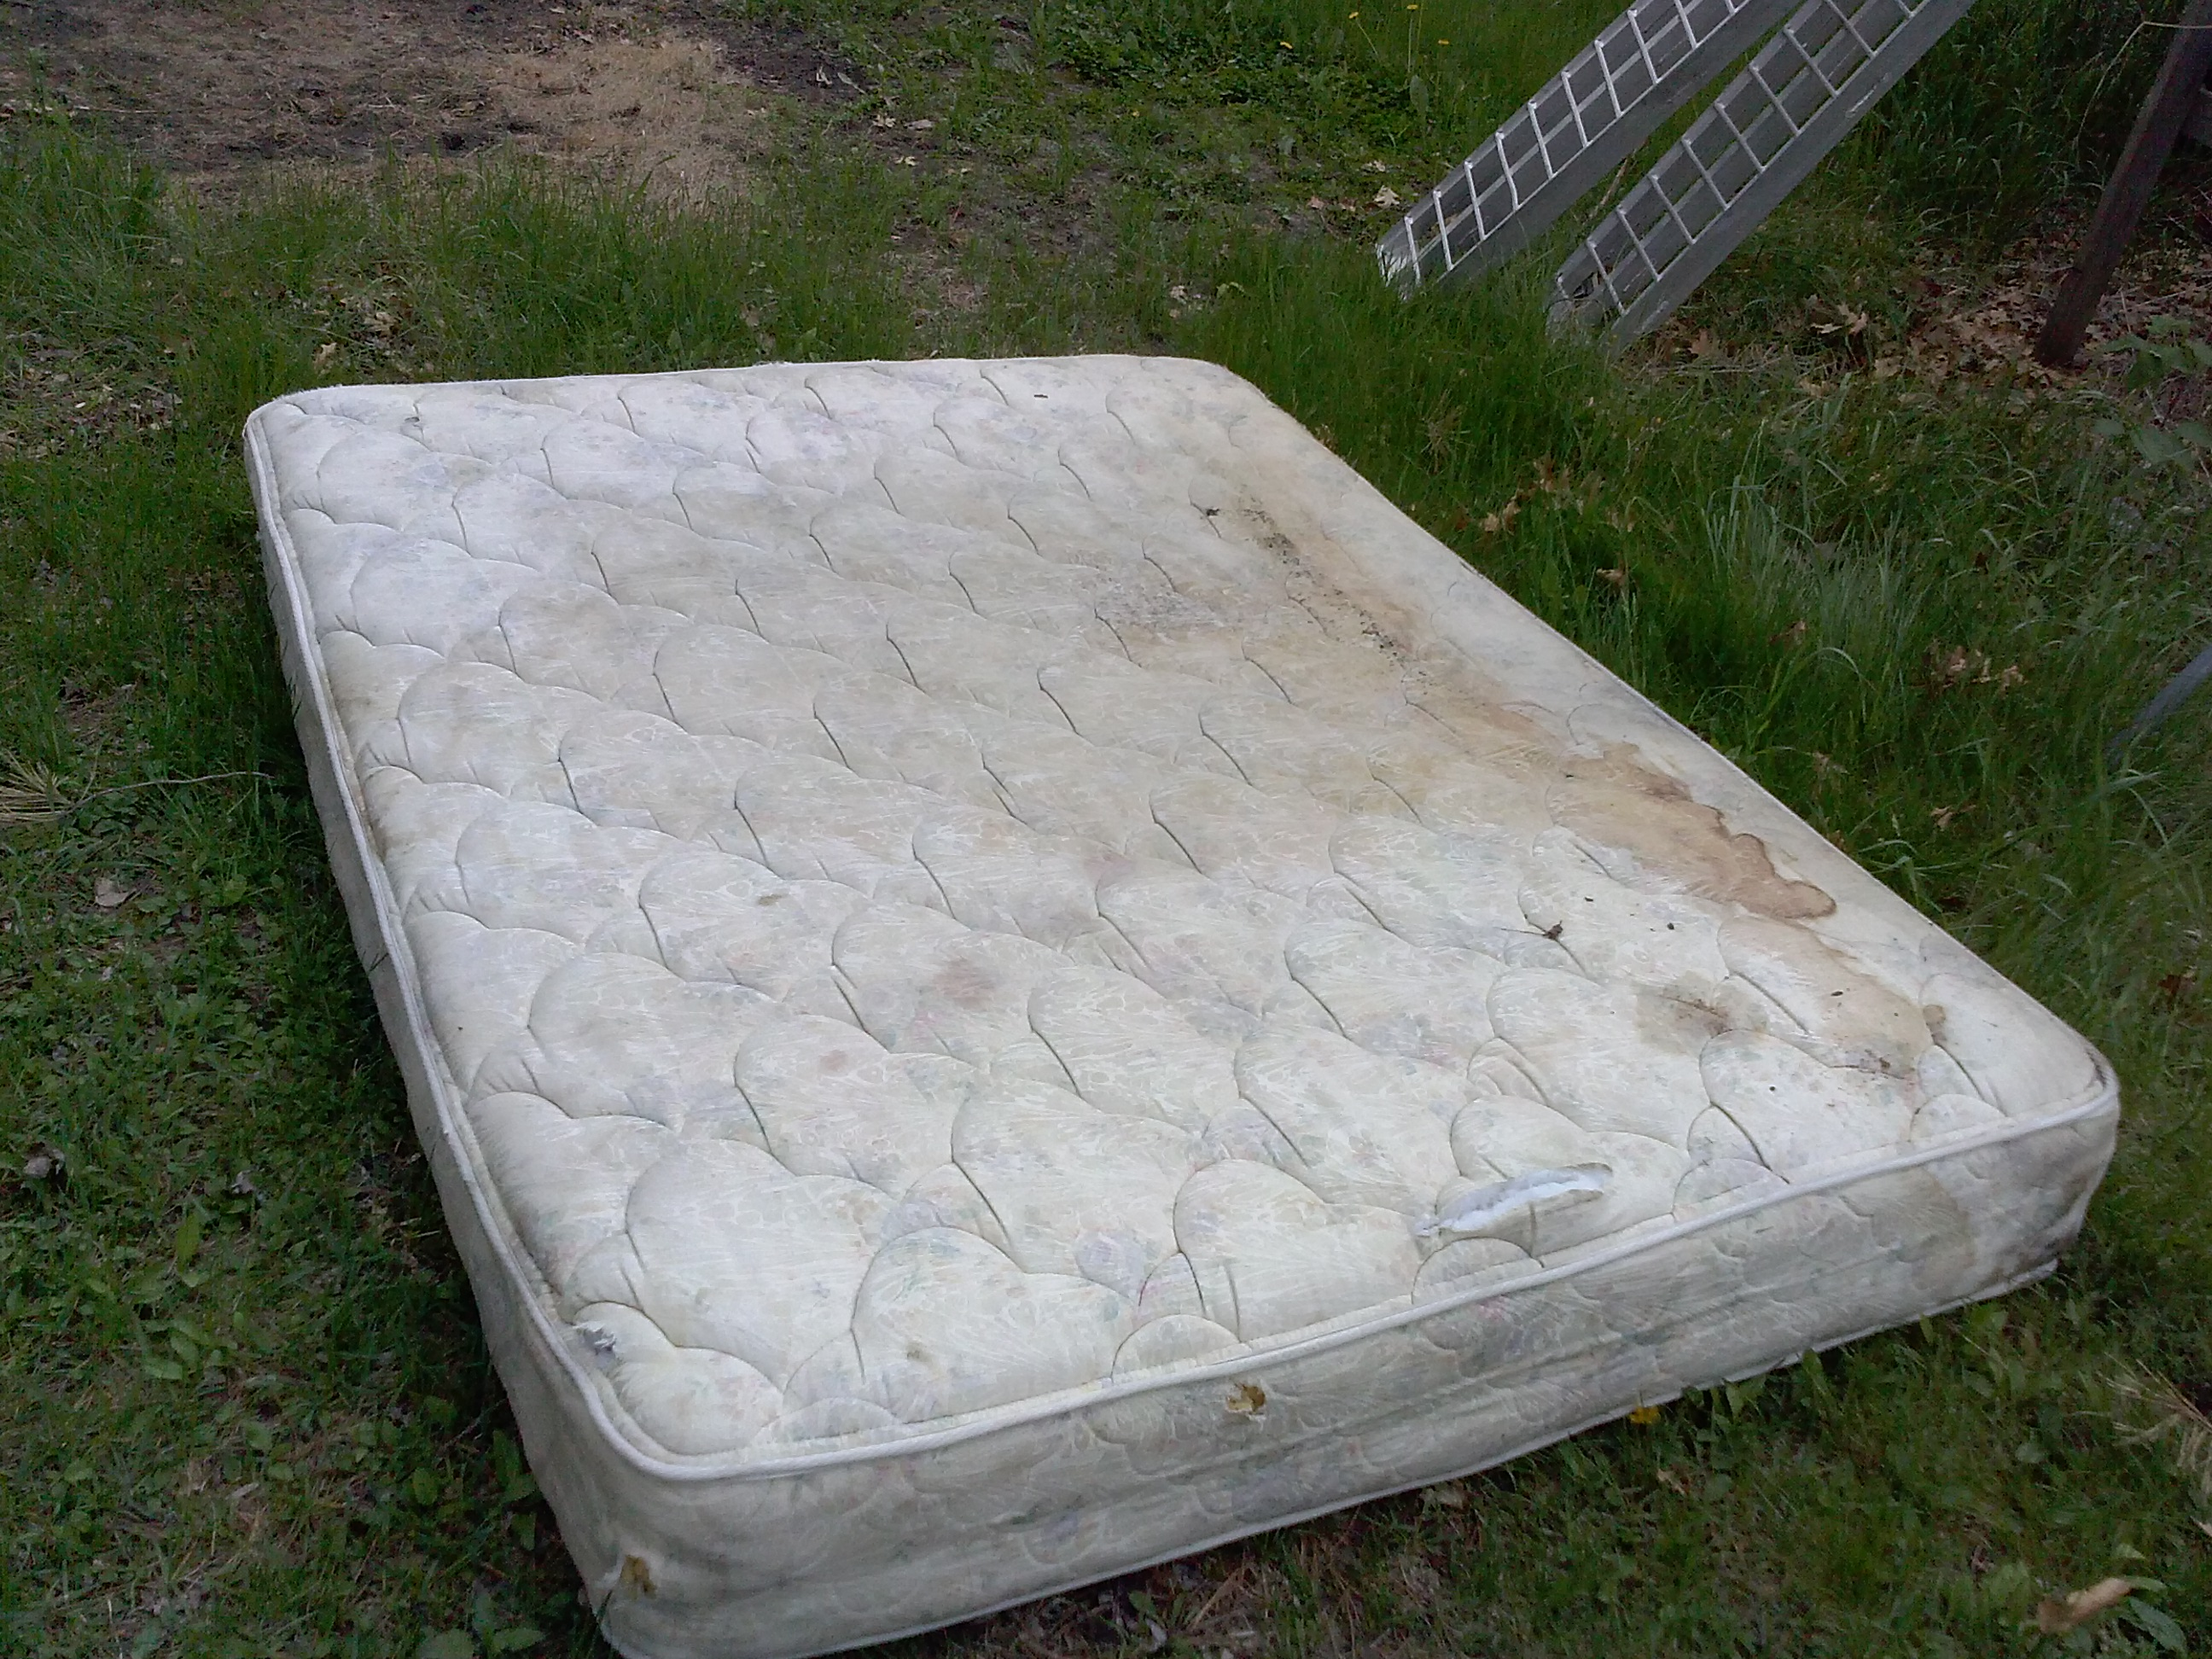 how to get rid of a mattress for free no nonsense landlord